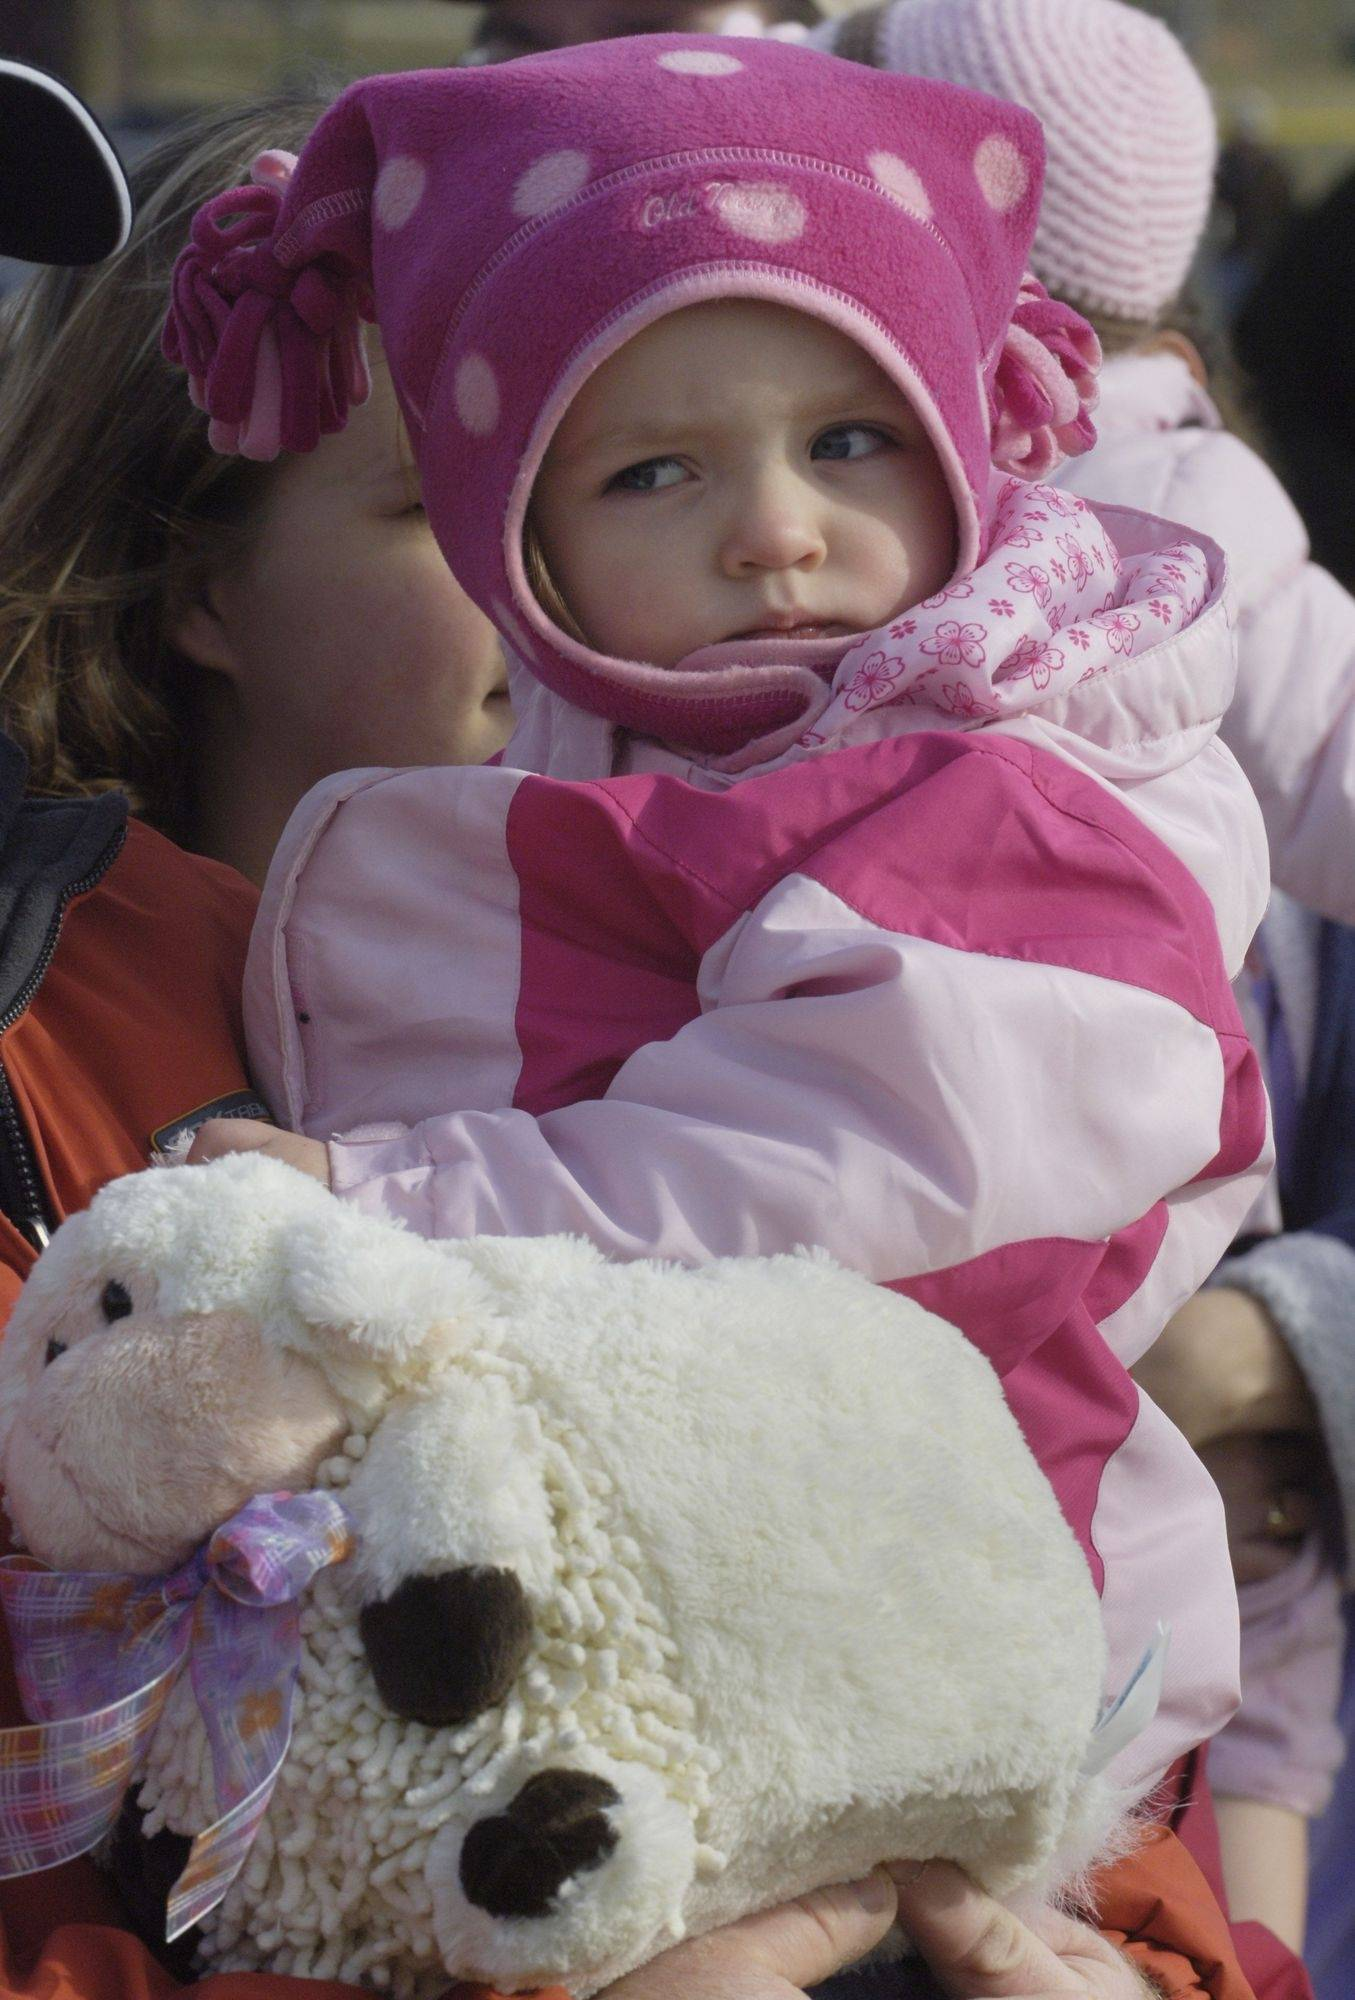 Isabella Mullins, 2, of Wauconda waits for the start of Saturday's annual egg hunt at Cook Park in Wauconda.